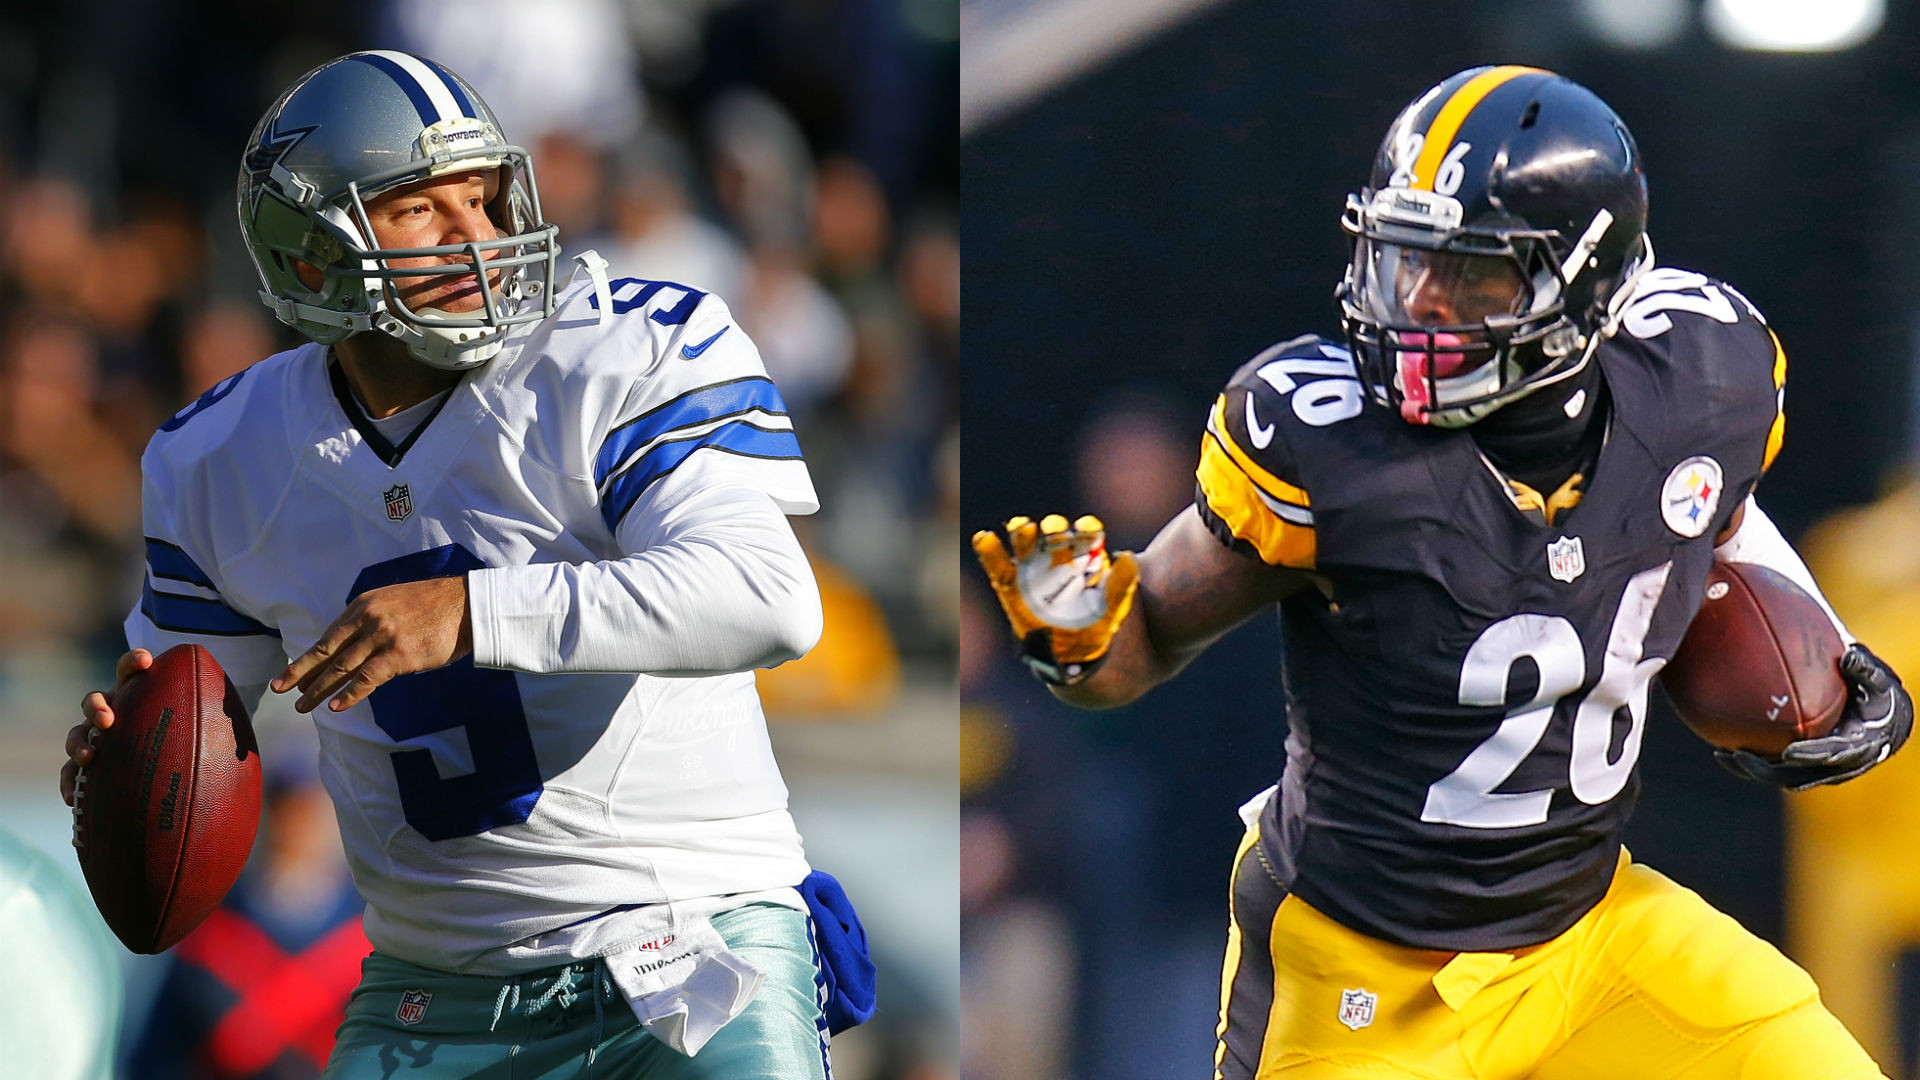 NFL free agency 2017: Odds on teams for Tony Romo, Le'Veon Bell, more | NFL  | Sporting News